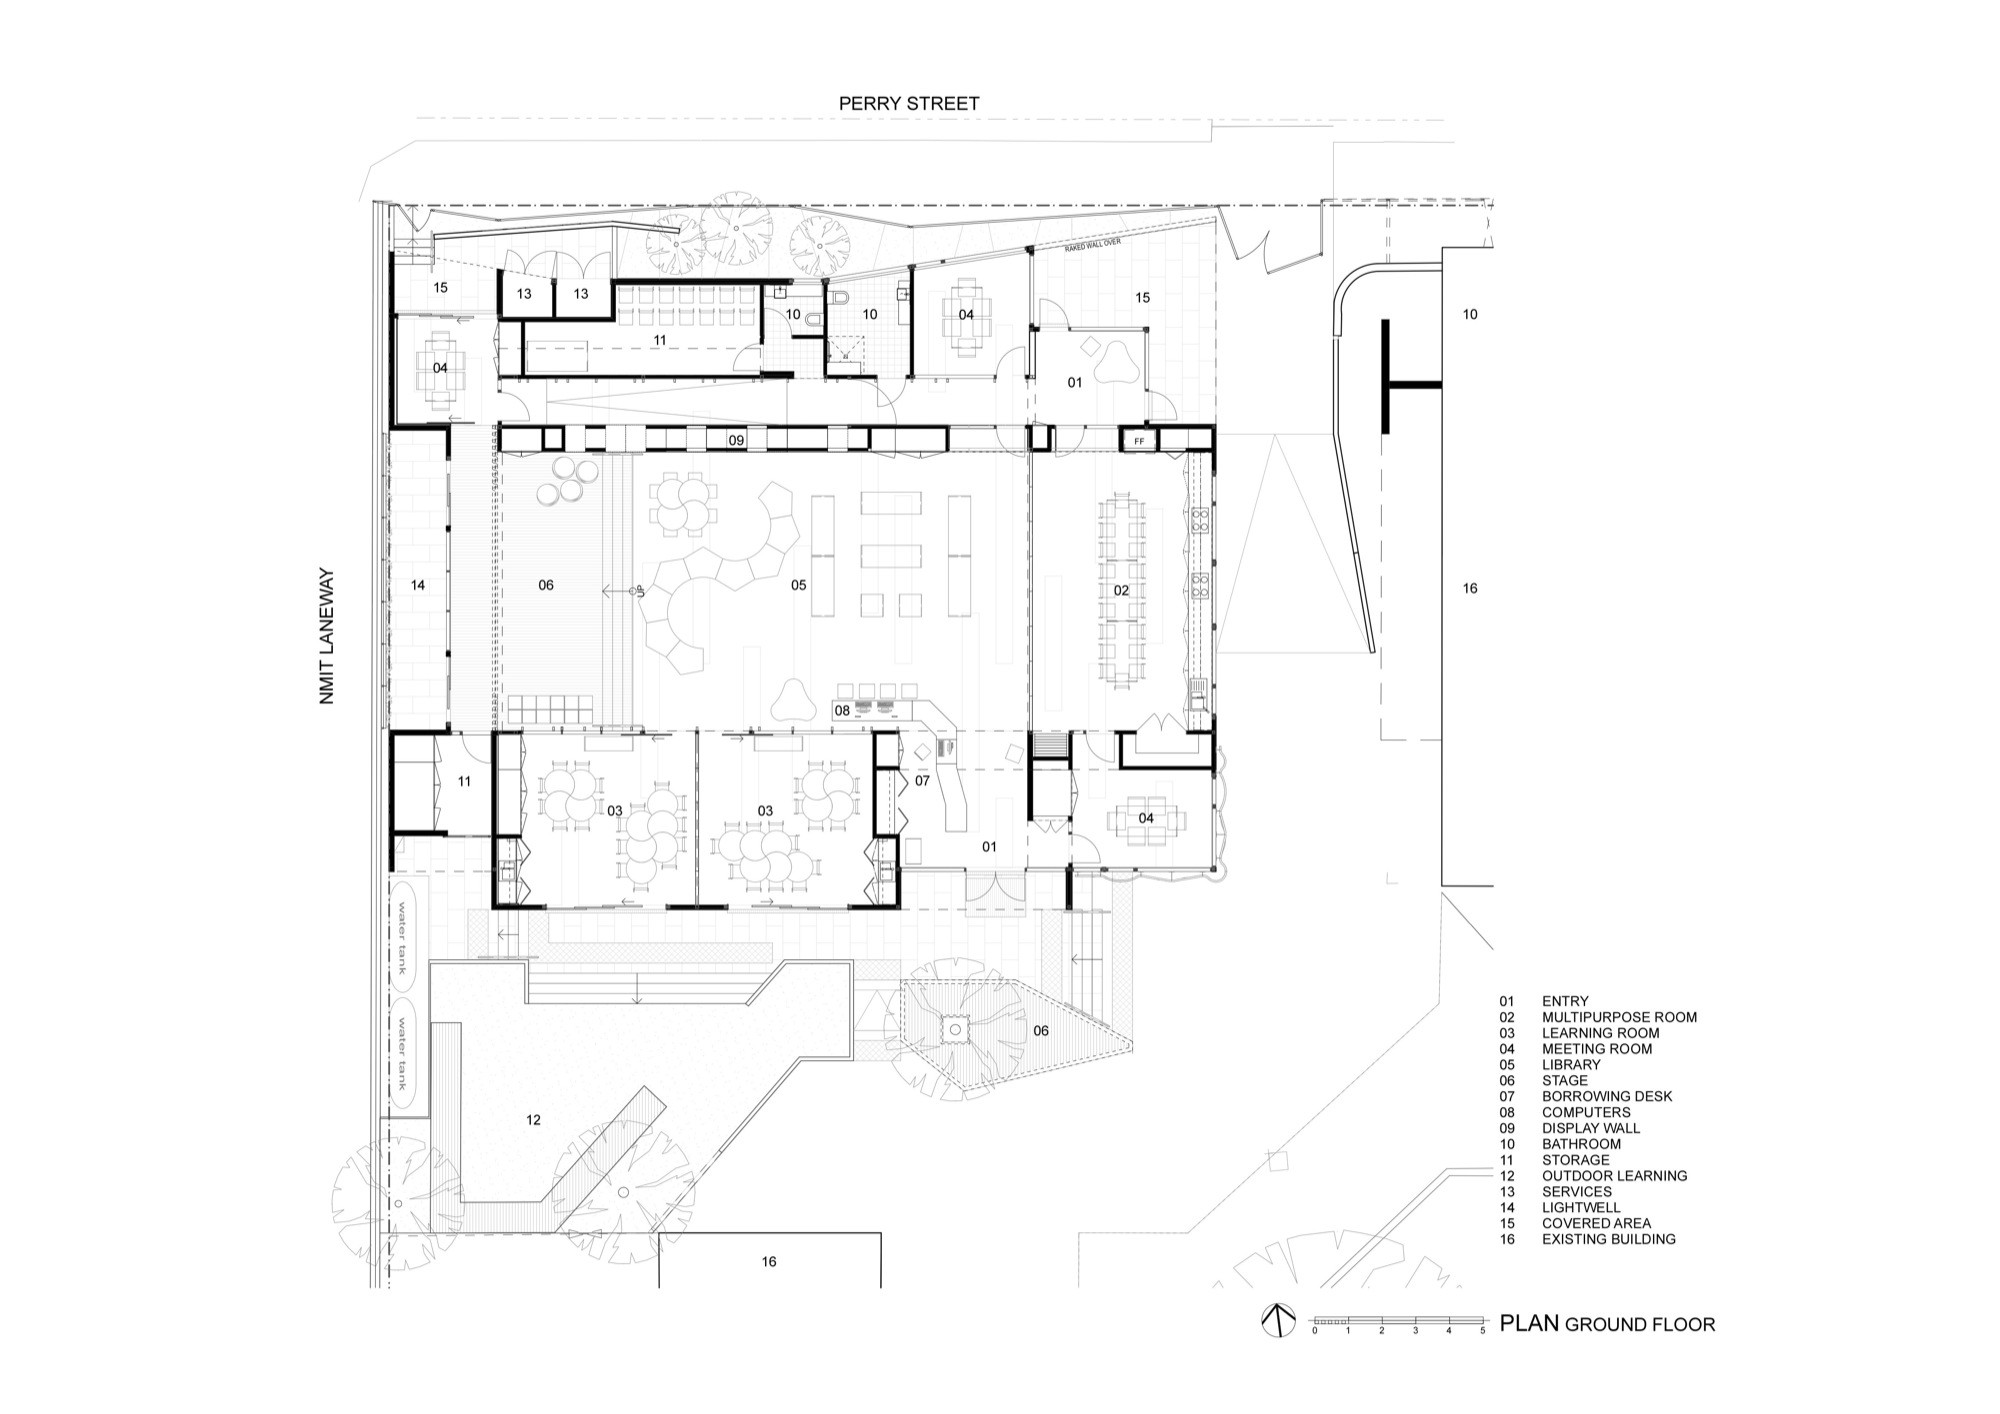 Architecture School Plan contemporary architecture school plan with inspiration decorating